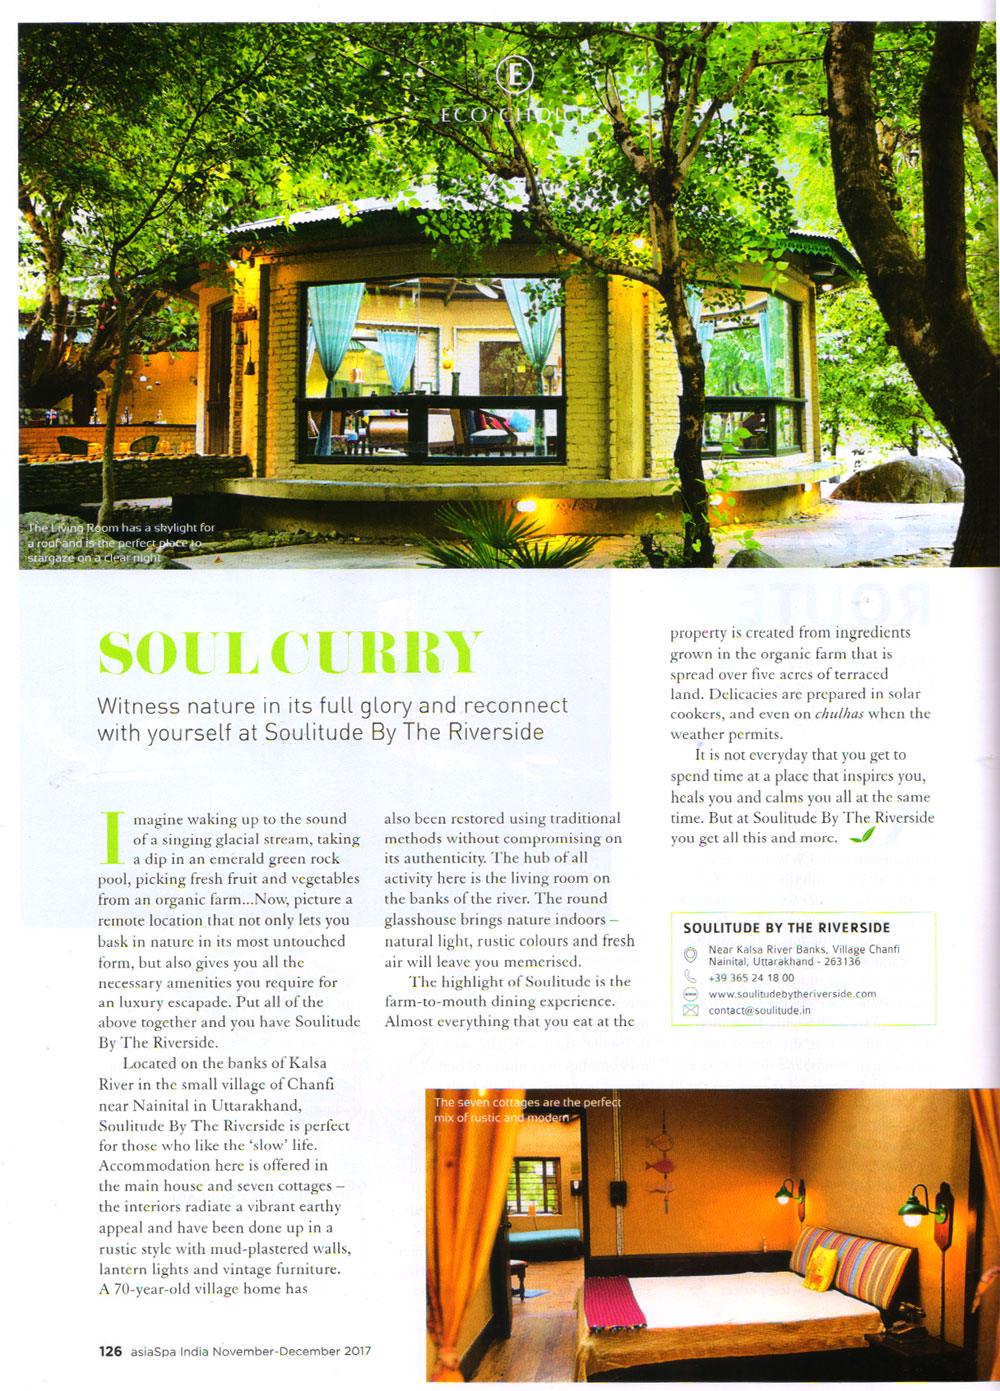 Soulitude featured on asiaSpa India Magazine